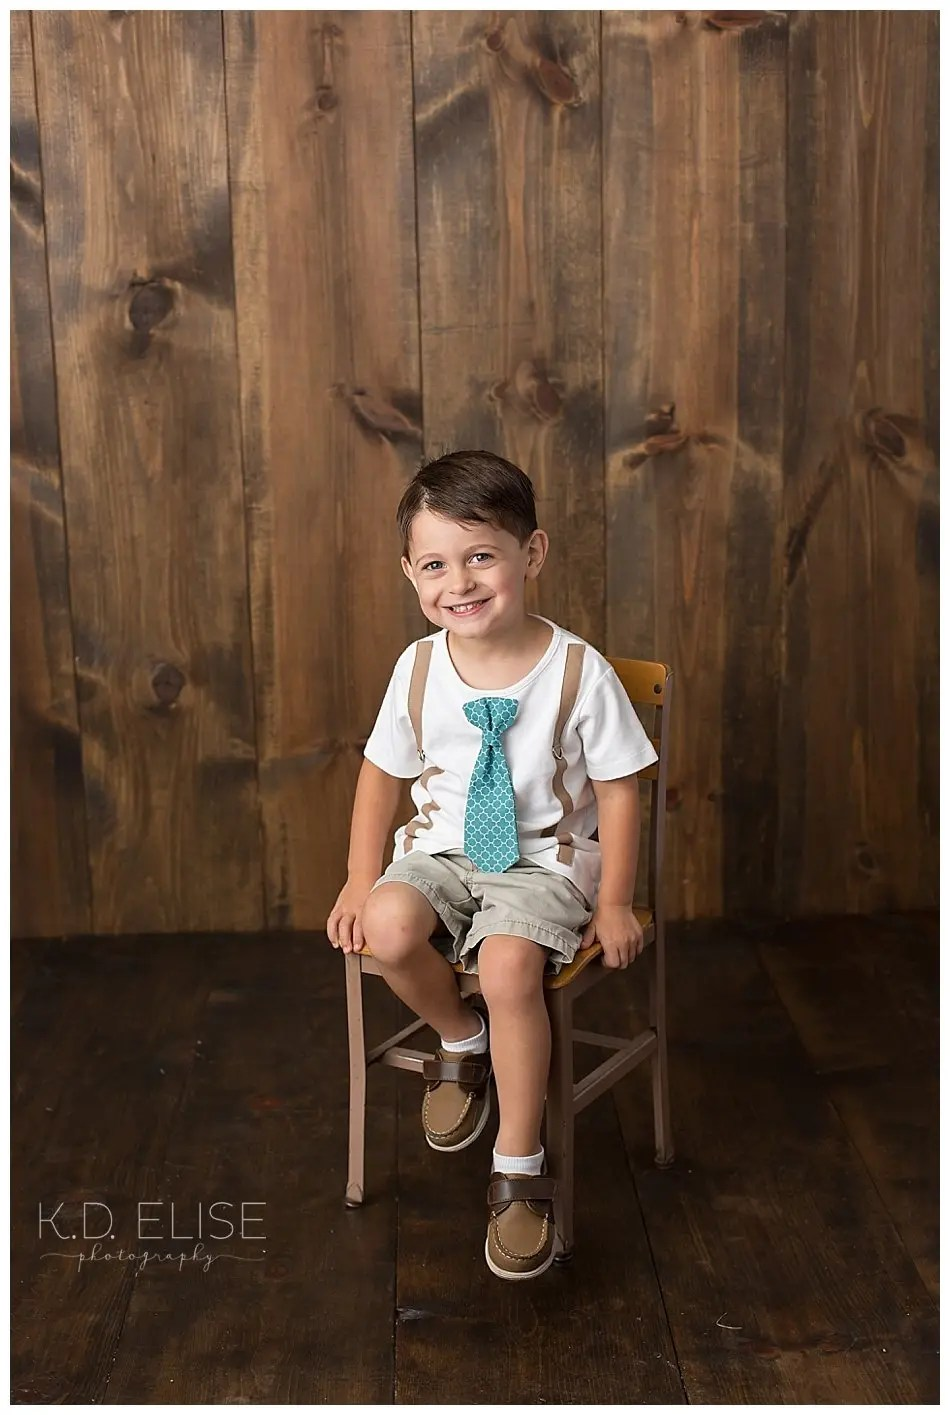 Smiling boy with a tie shirt sitting on a wooden chair.